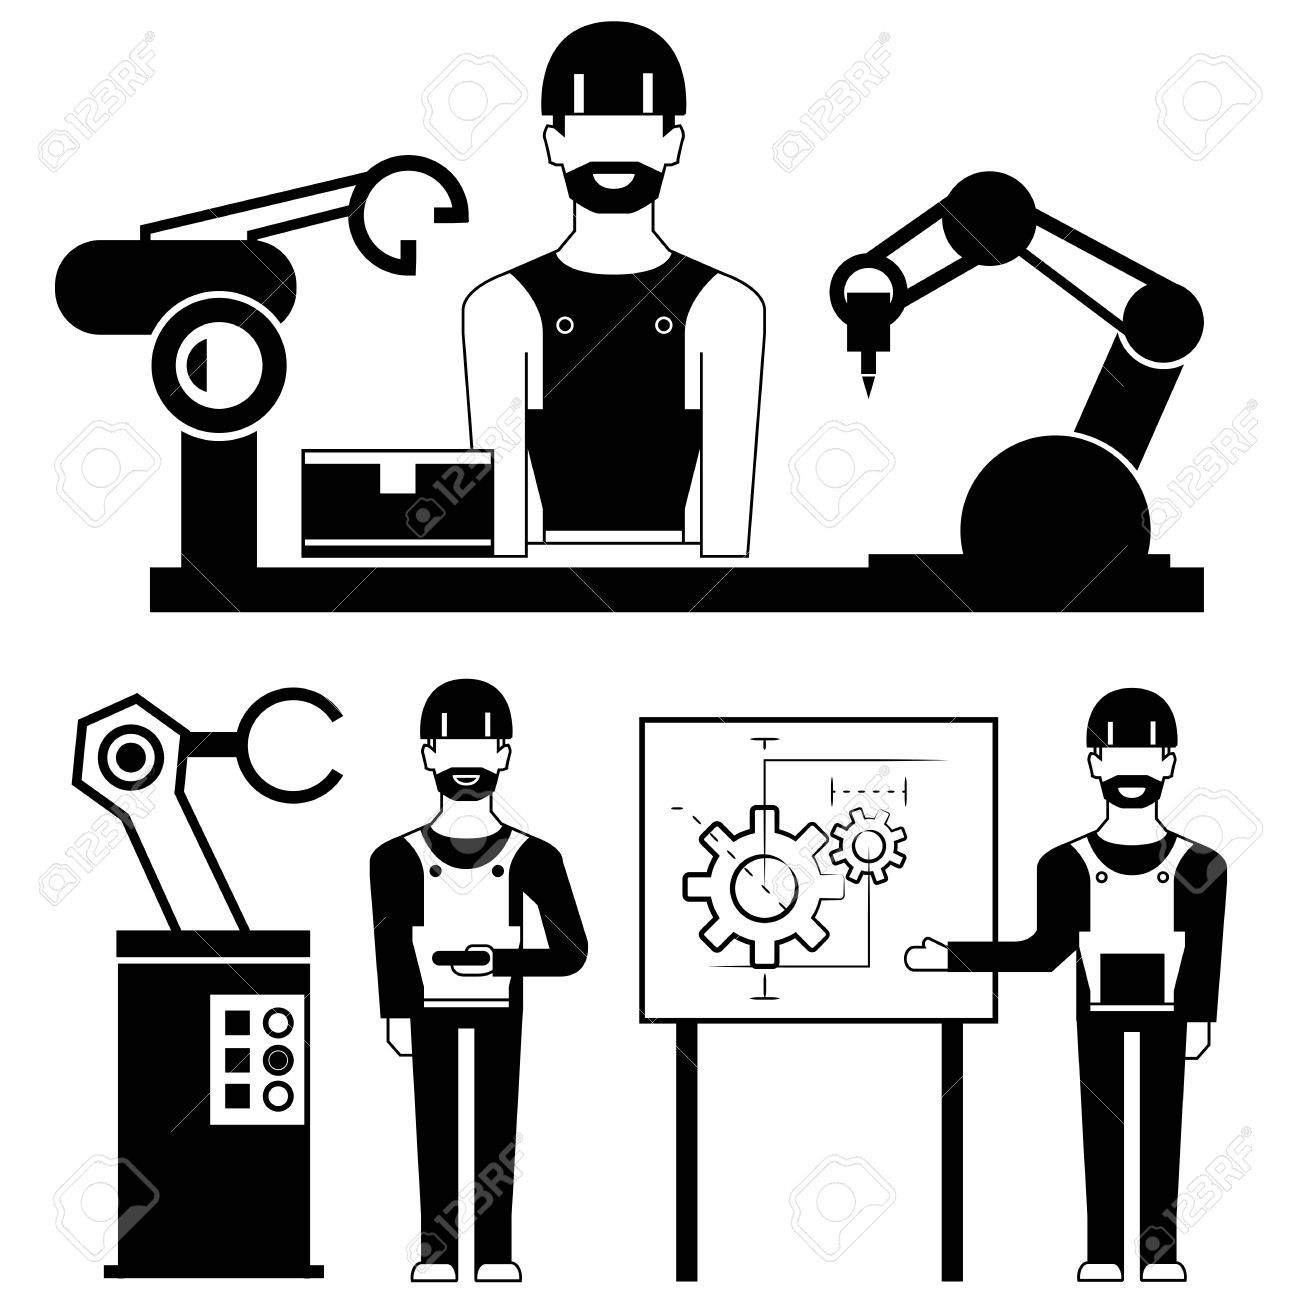 Industrial engineering clipart png library Industrial engineering clipart 5 » Clipart Portal png library